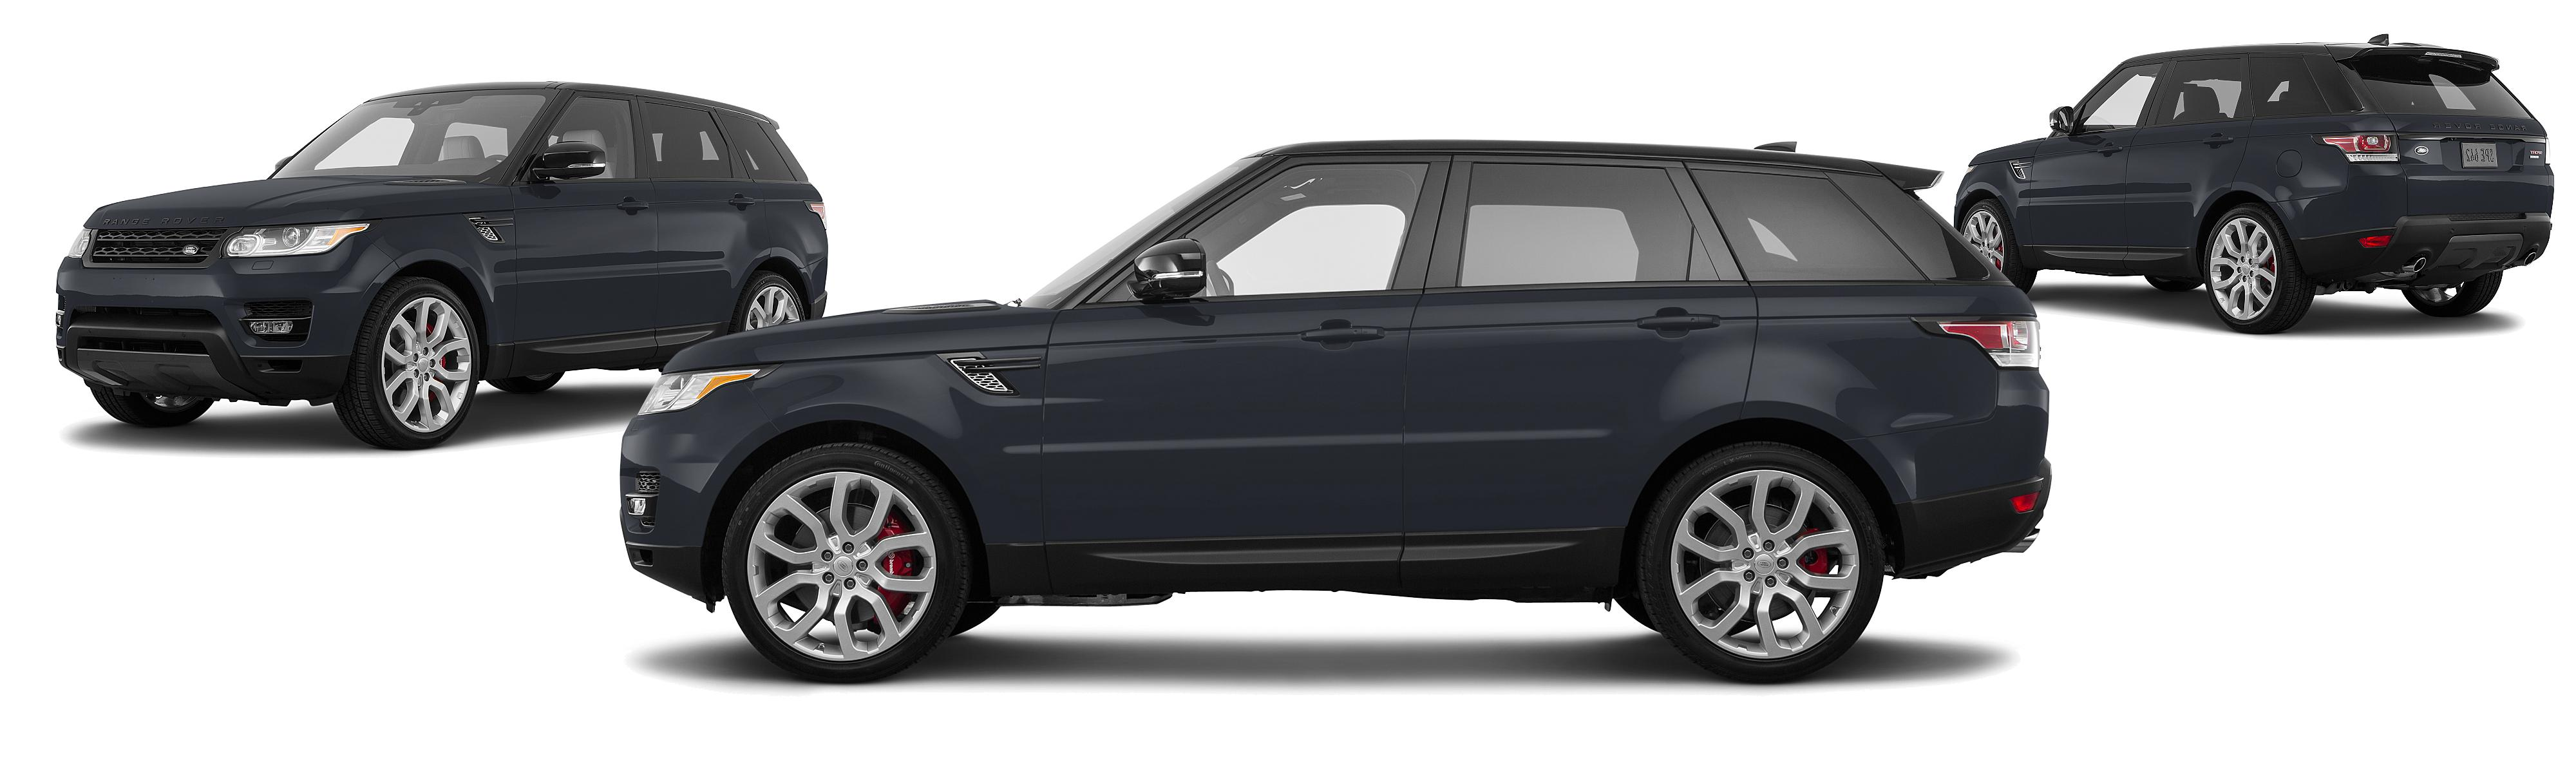 2017 land rover range rover sport awd hse 4dr suv research groovecar rh groovecar com